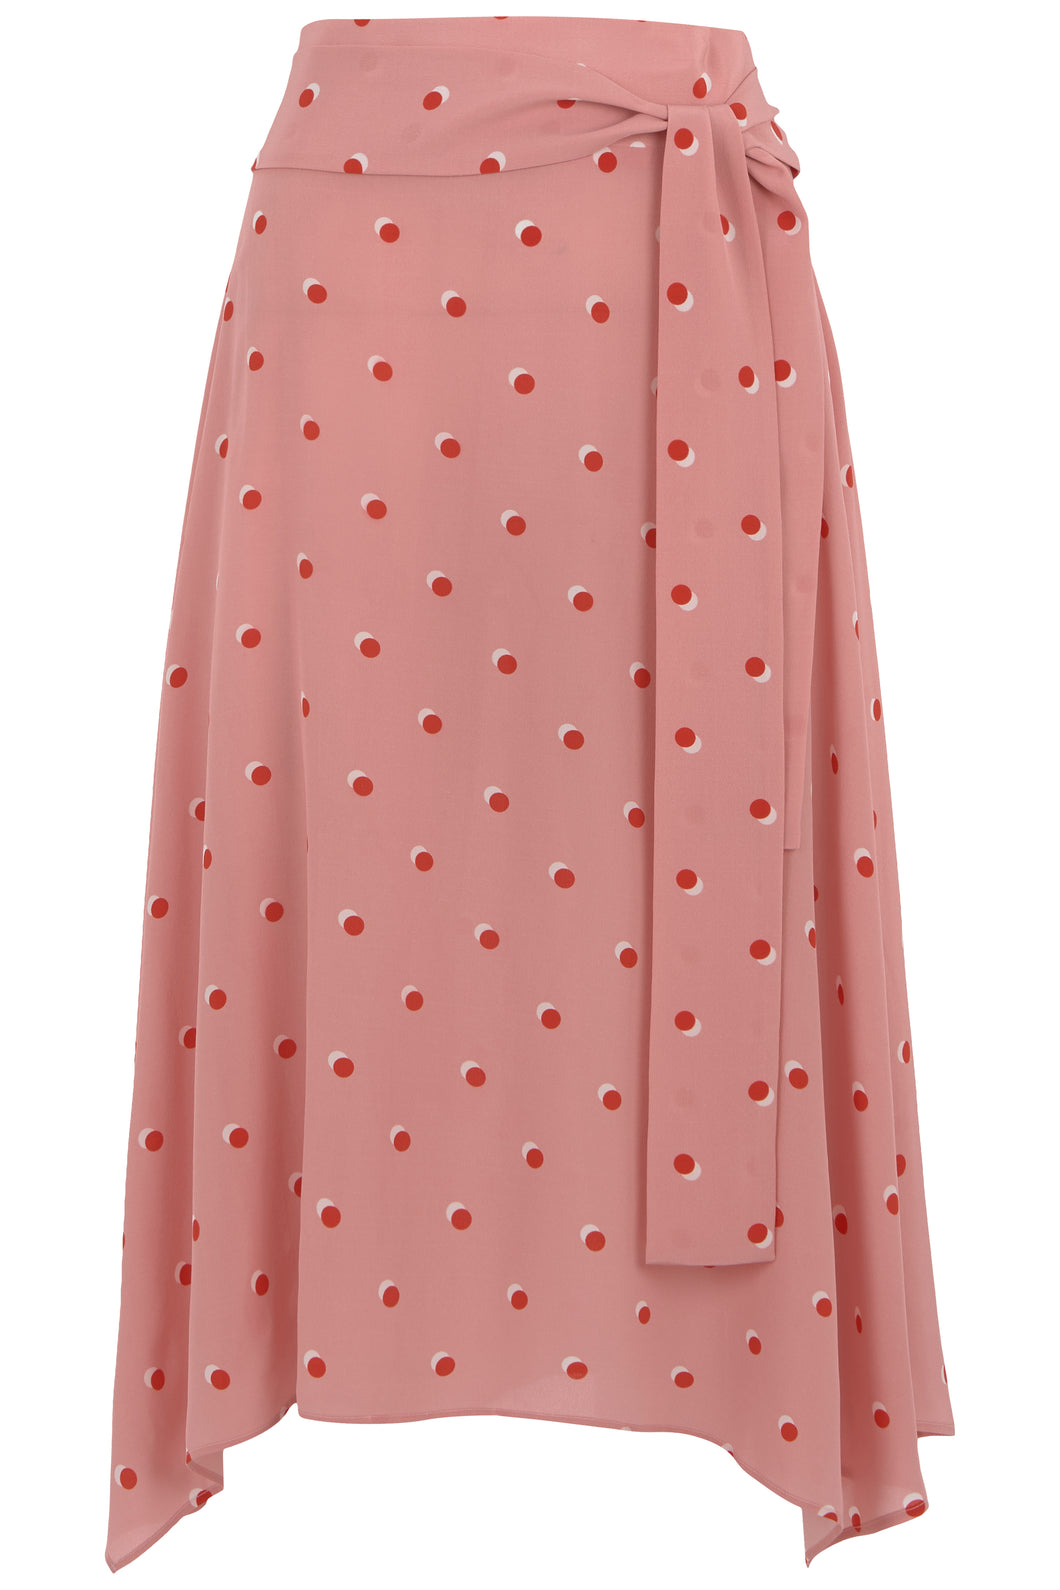 Lonestar Skirt in Pink Spot